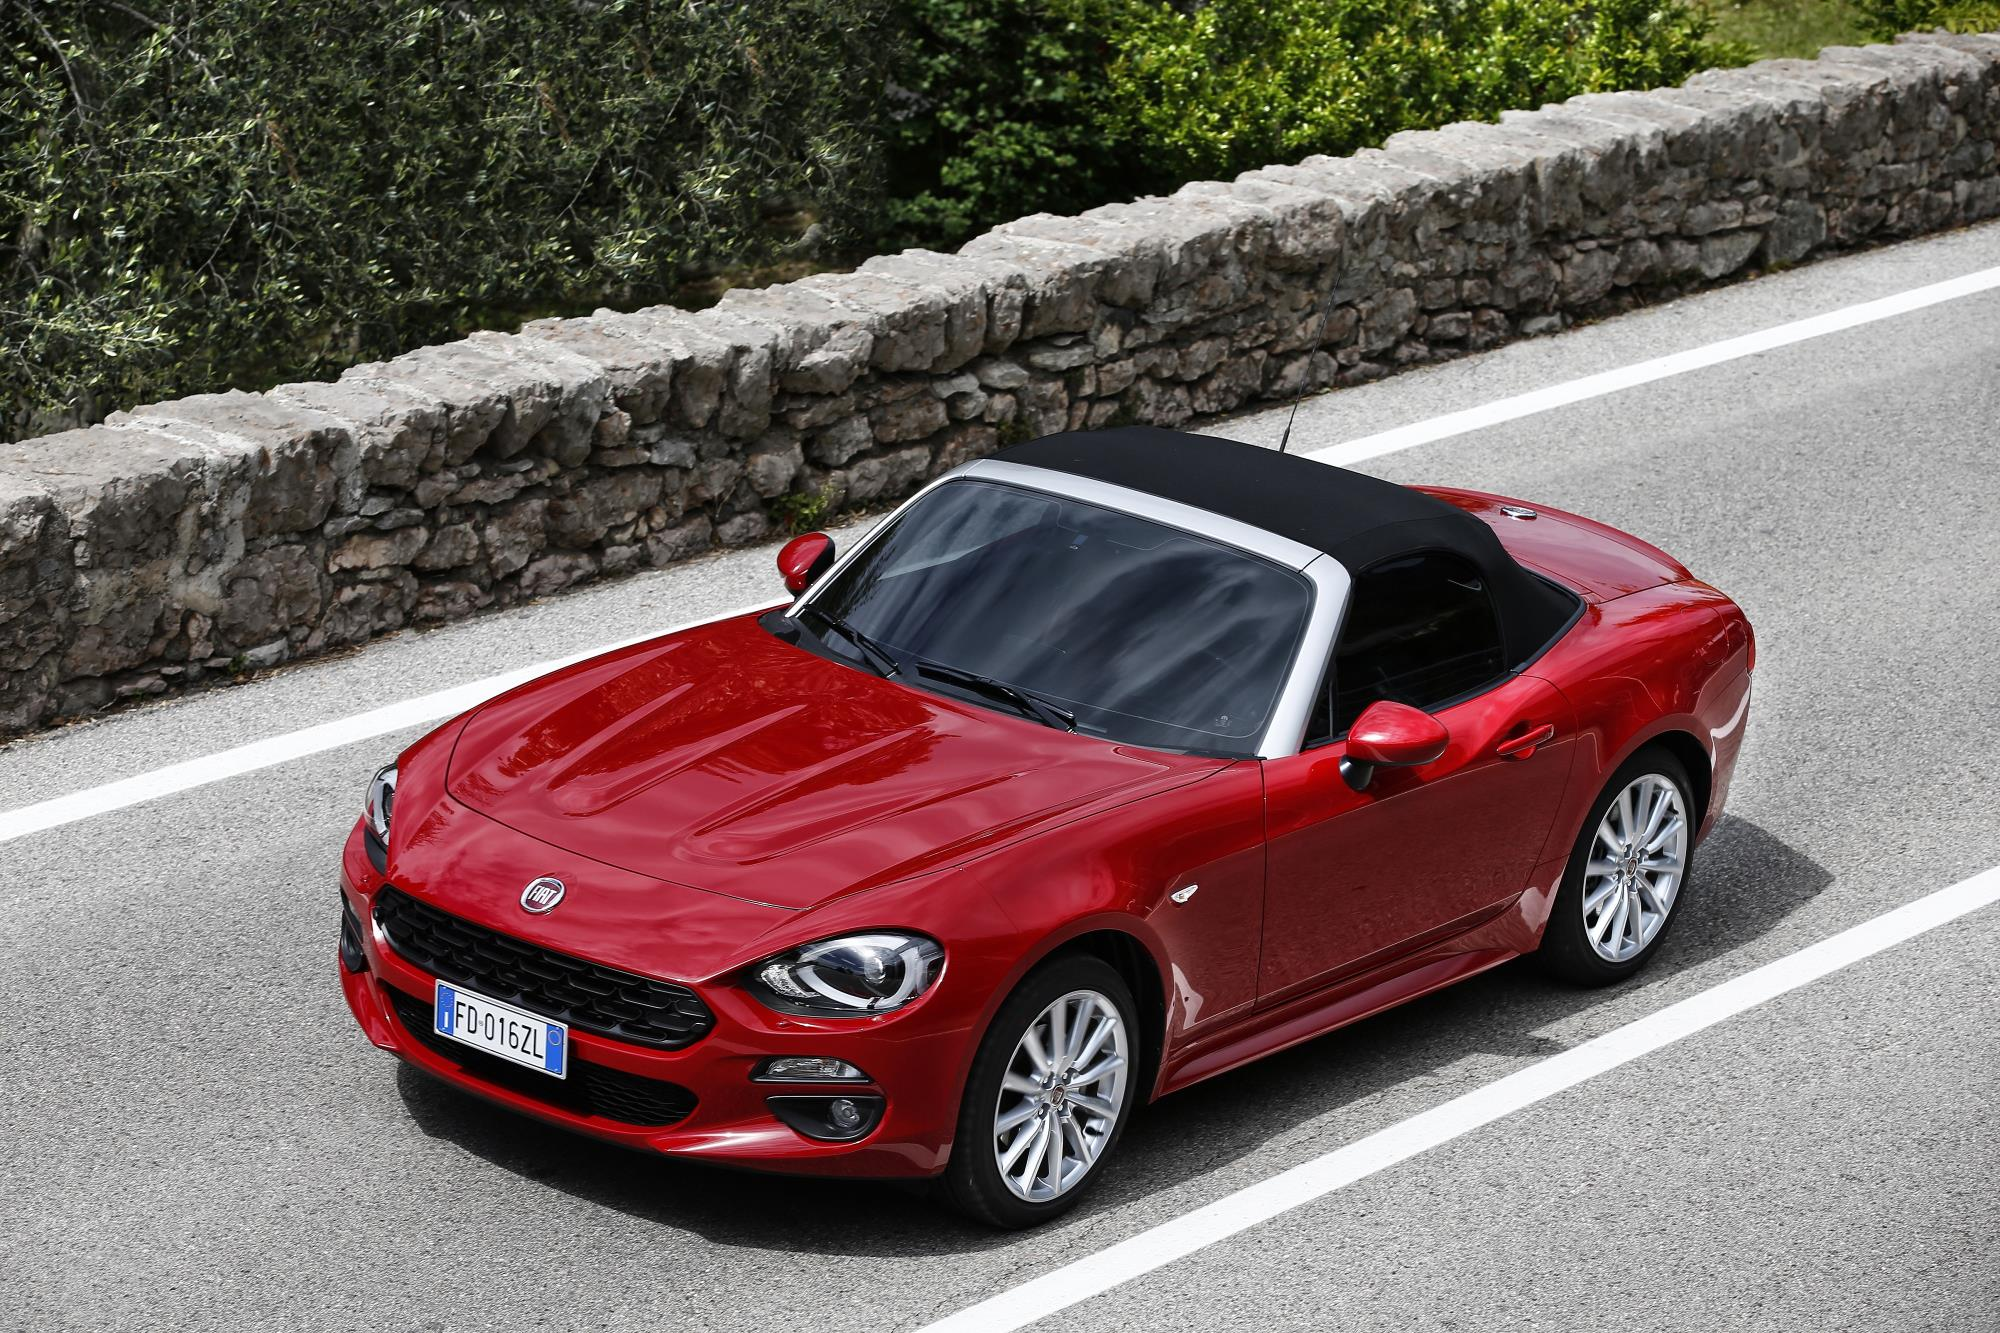 fiat spider 124 abarth gay named european lusso performance europe convertible history launched priced autoevolution turbo cars europa celebrates officially